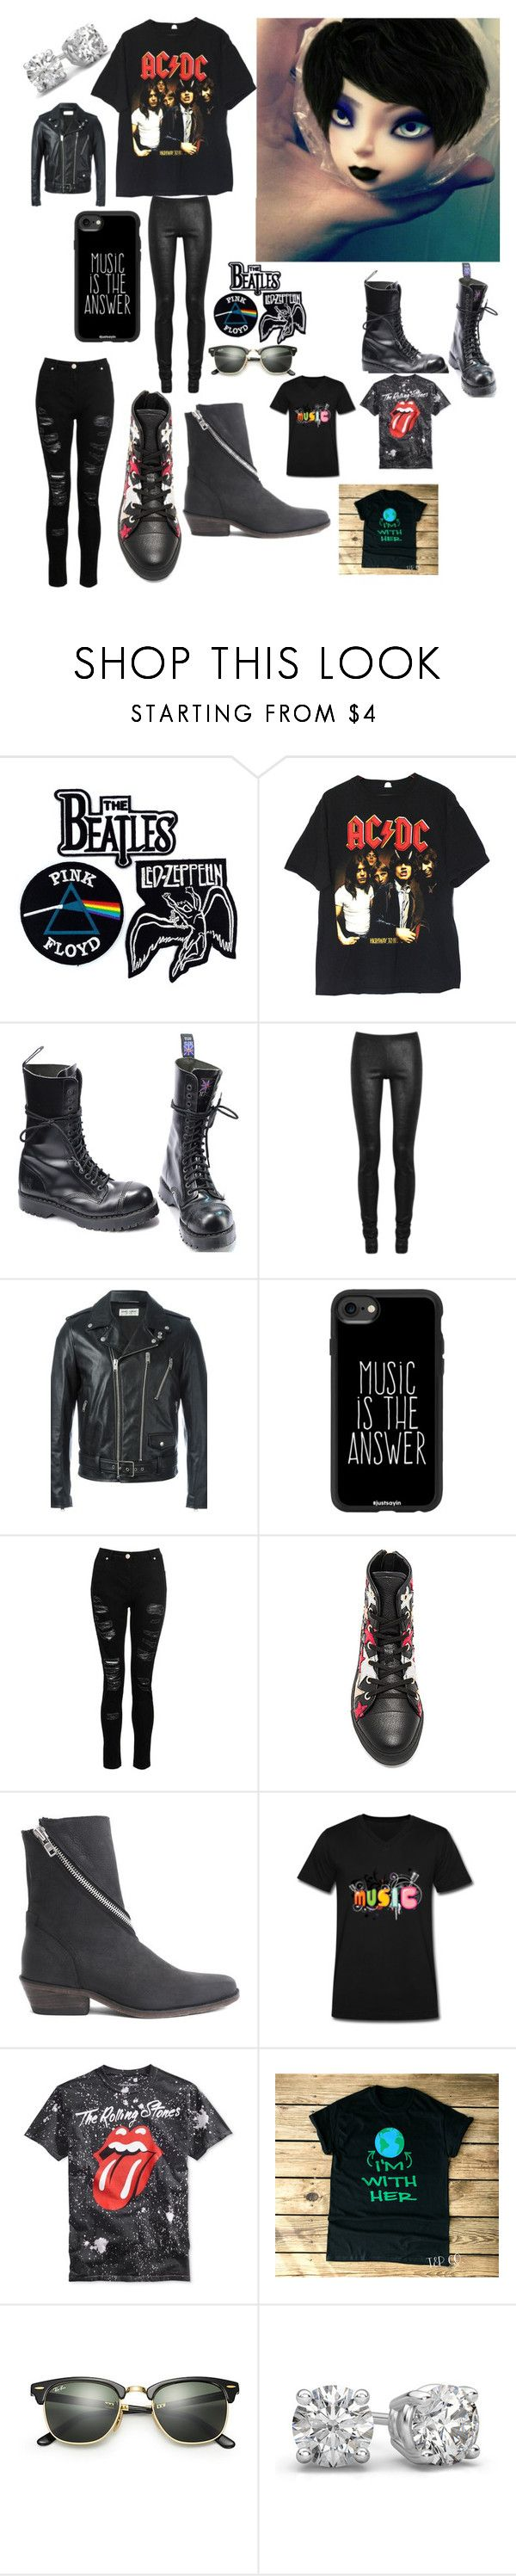 """""""BJD Concept"""" by ris66 ❤ liked on Polyvore featuring Floyd, Commando, Rick Owens, Yves Saint Laurent, Casetify, Dorothy Perkins, Hilfiger Collection, John Fluevog, Ray-Ban and men's fashion"""